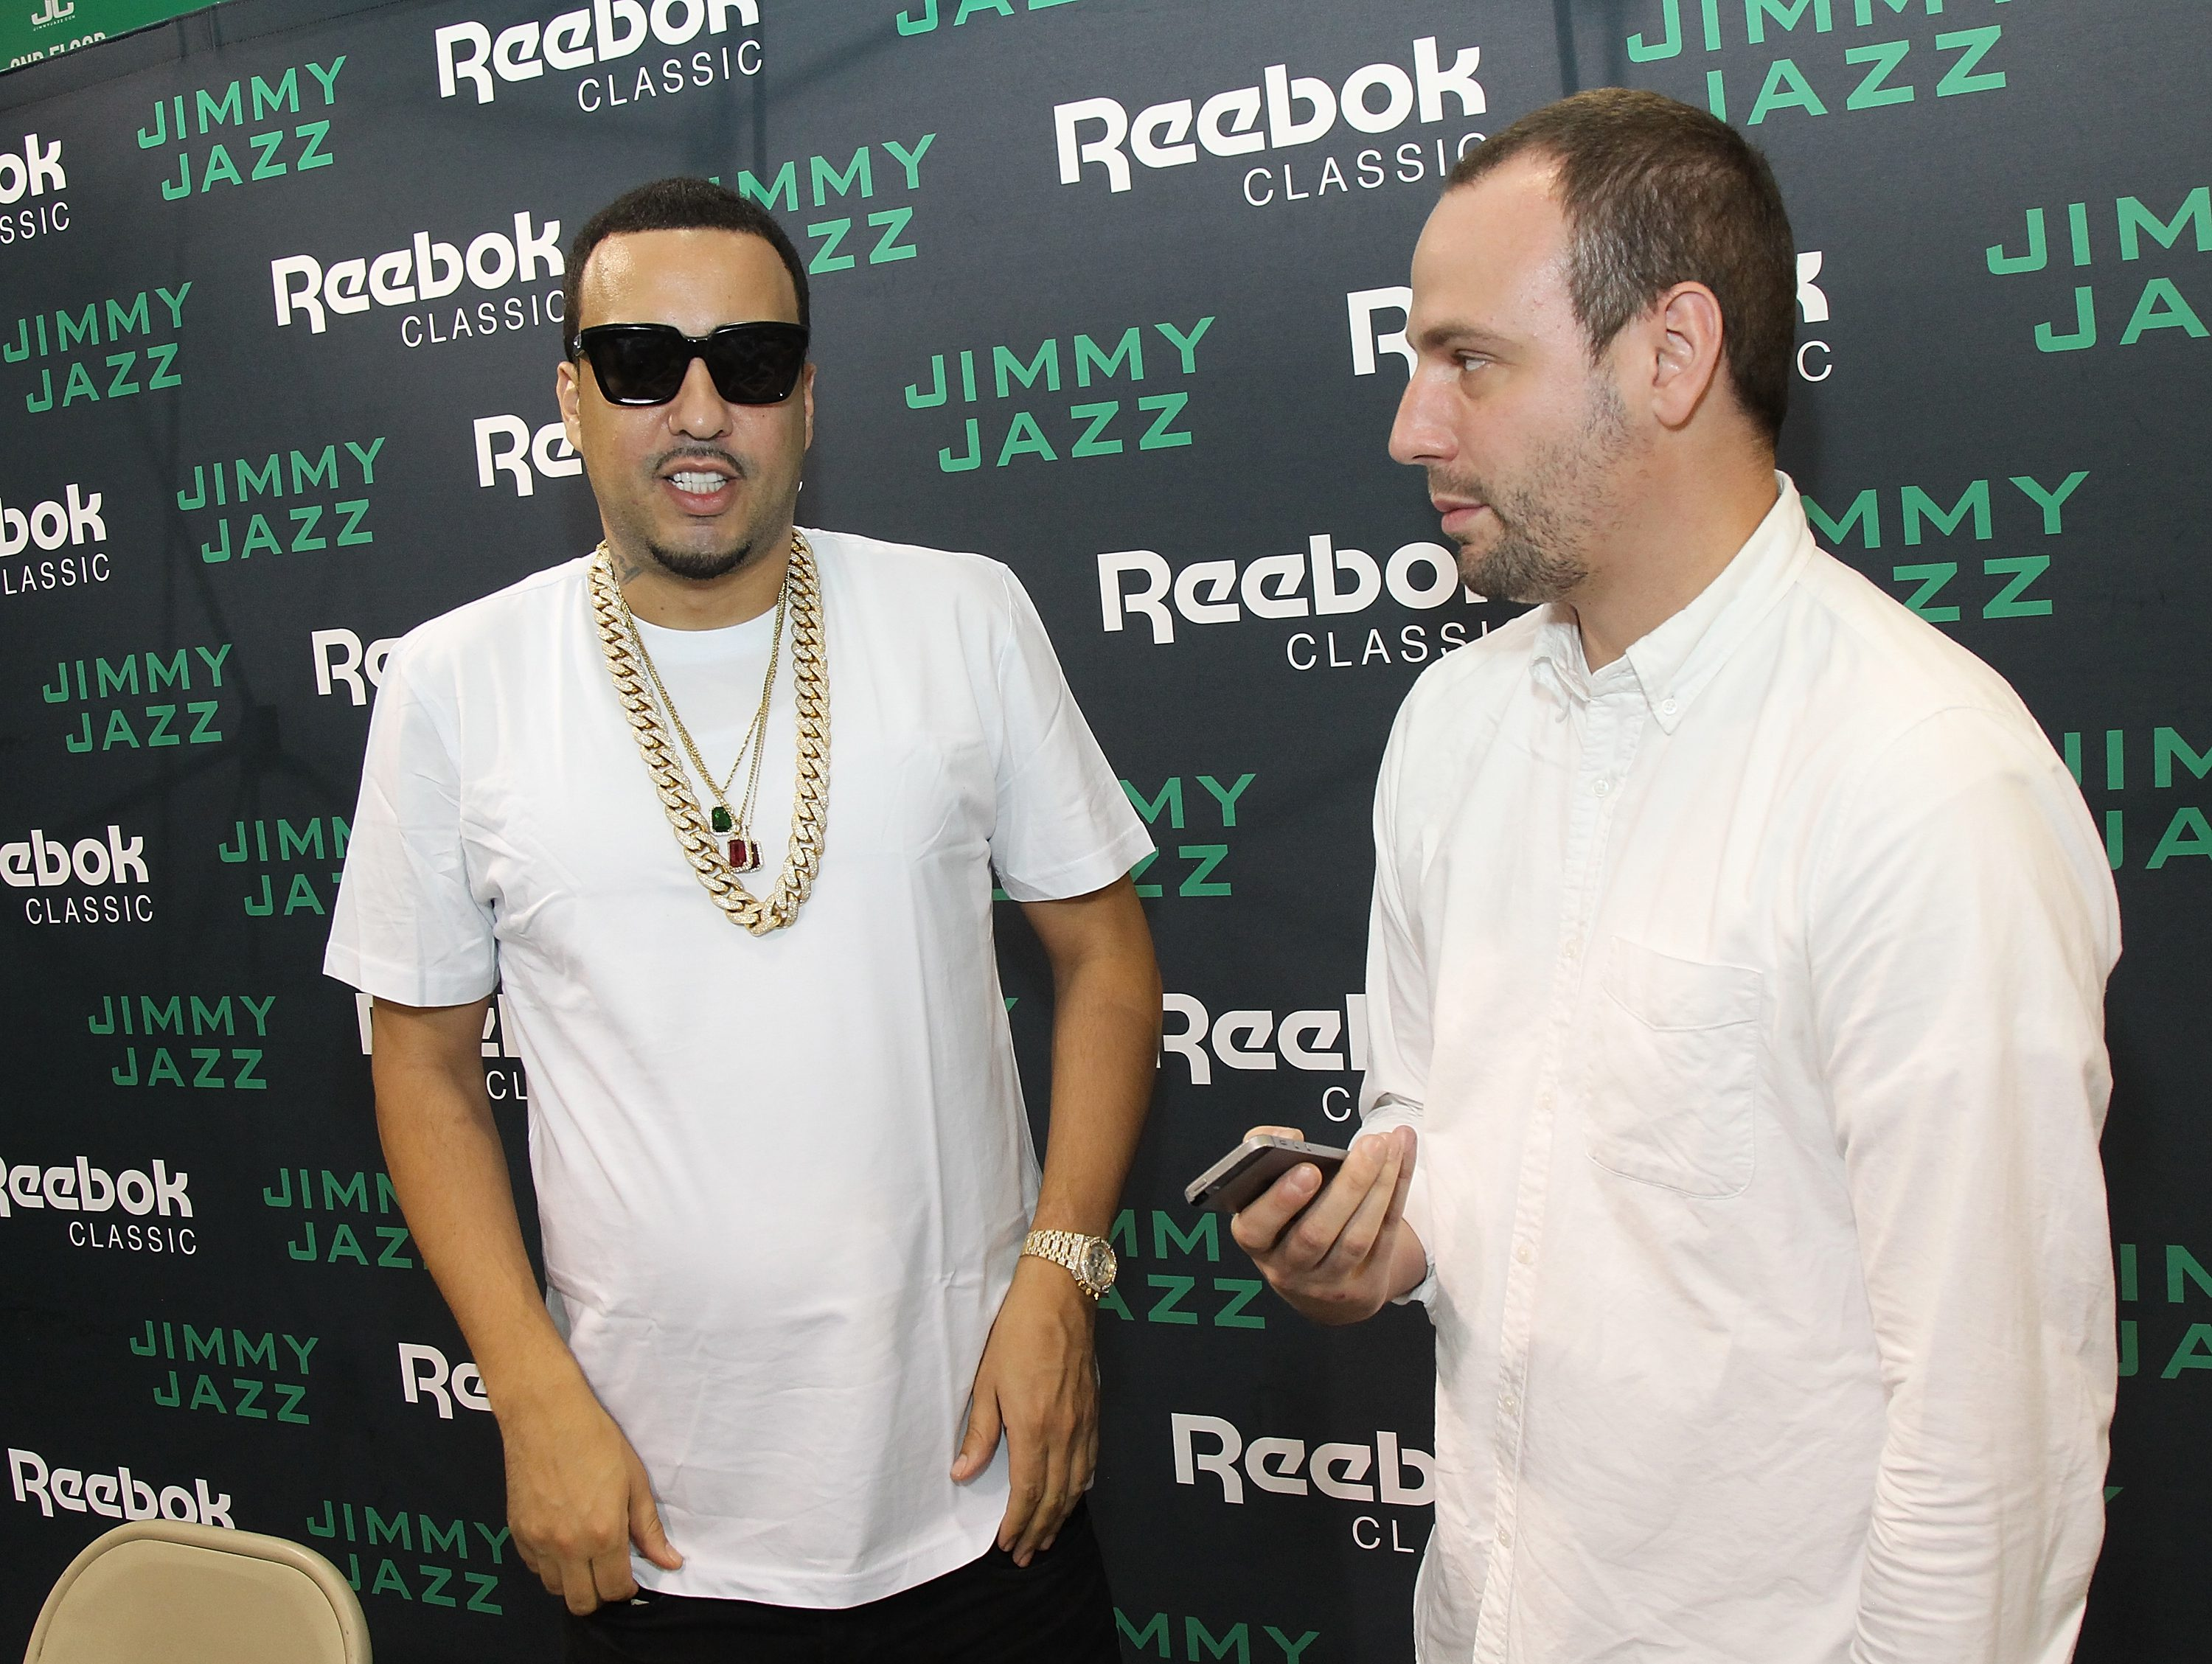 NEW YORK, NY - AUGUST 30:  French Montana (L) launches Ventilator ST at Jimmy Jazz in Harlem on August 30, 2015 in New York City.  (Photo by Bennett Raglin/Getty Images for Reebok)